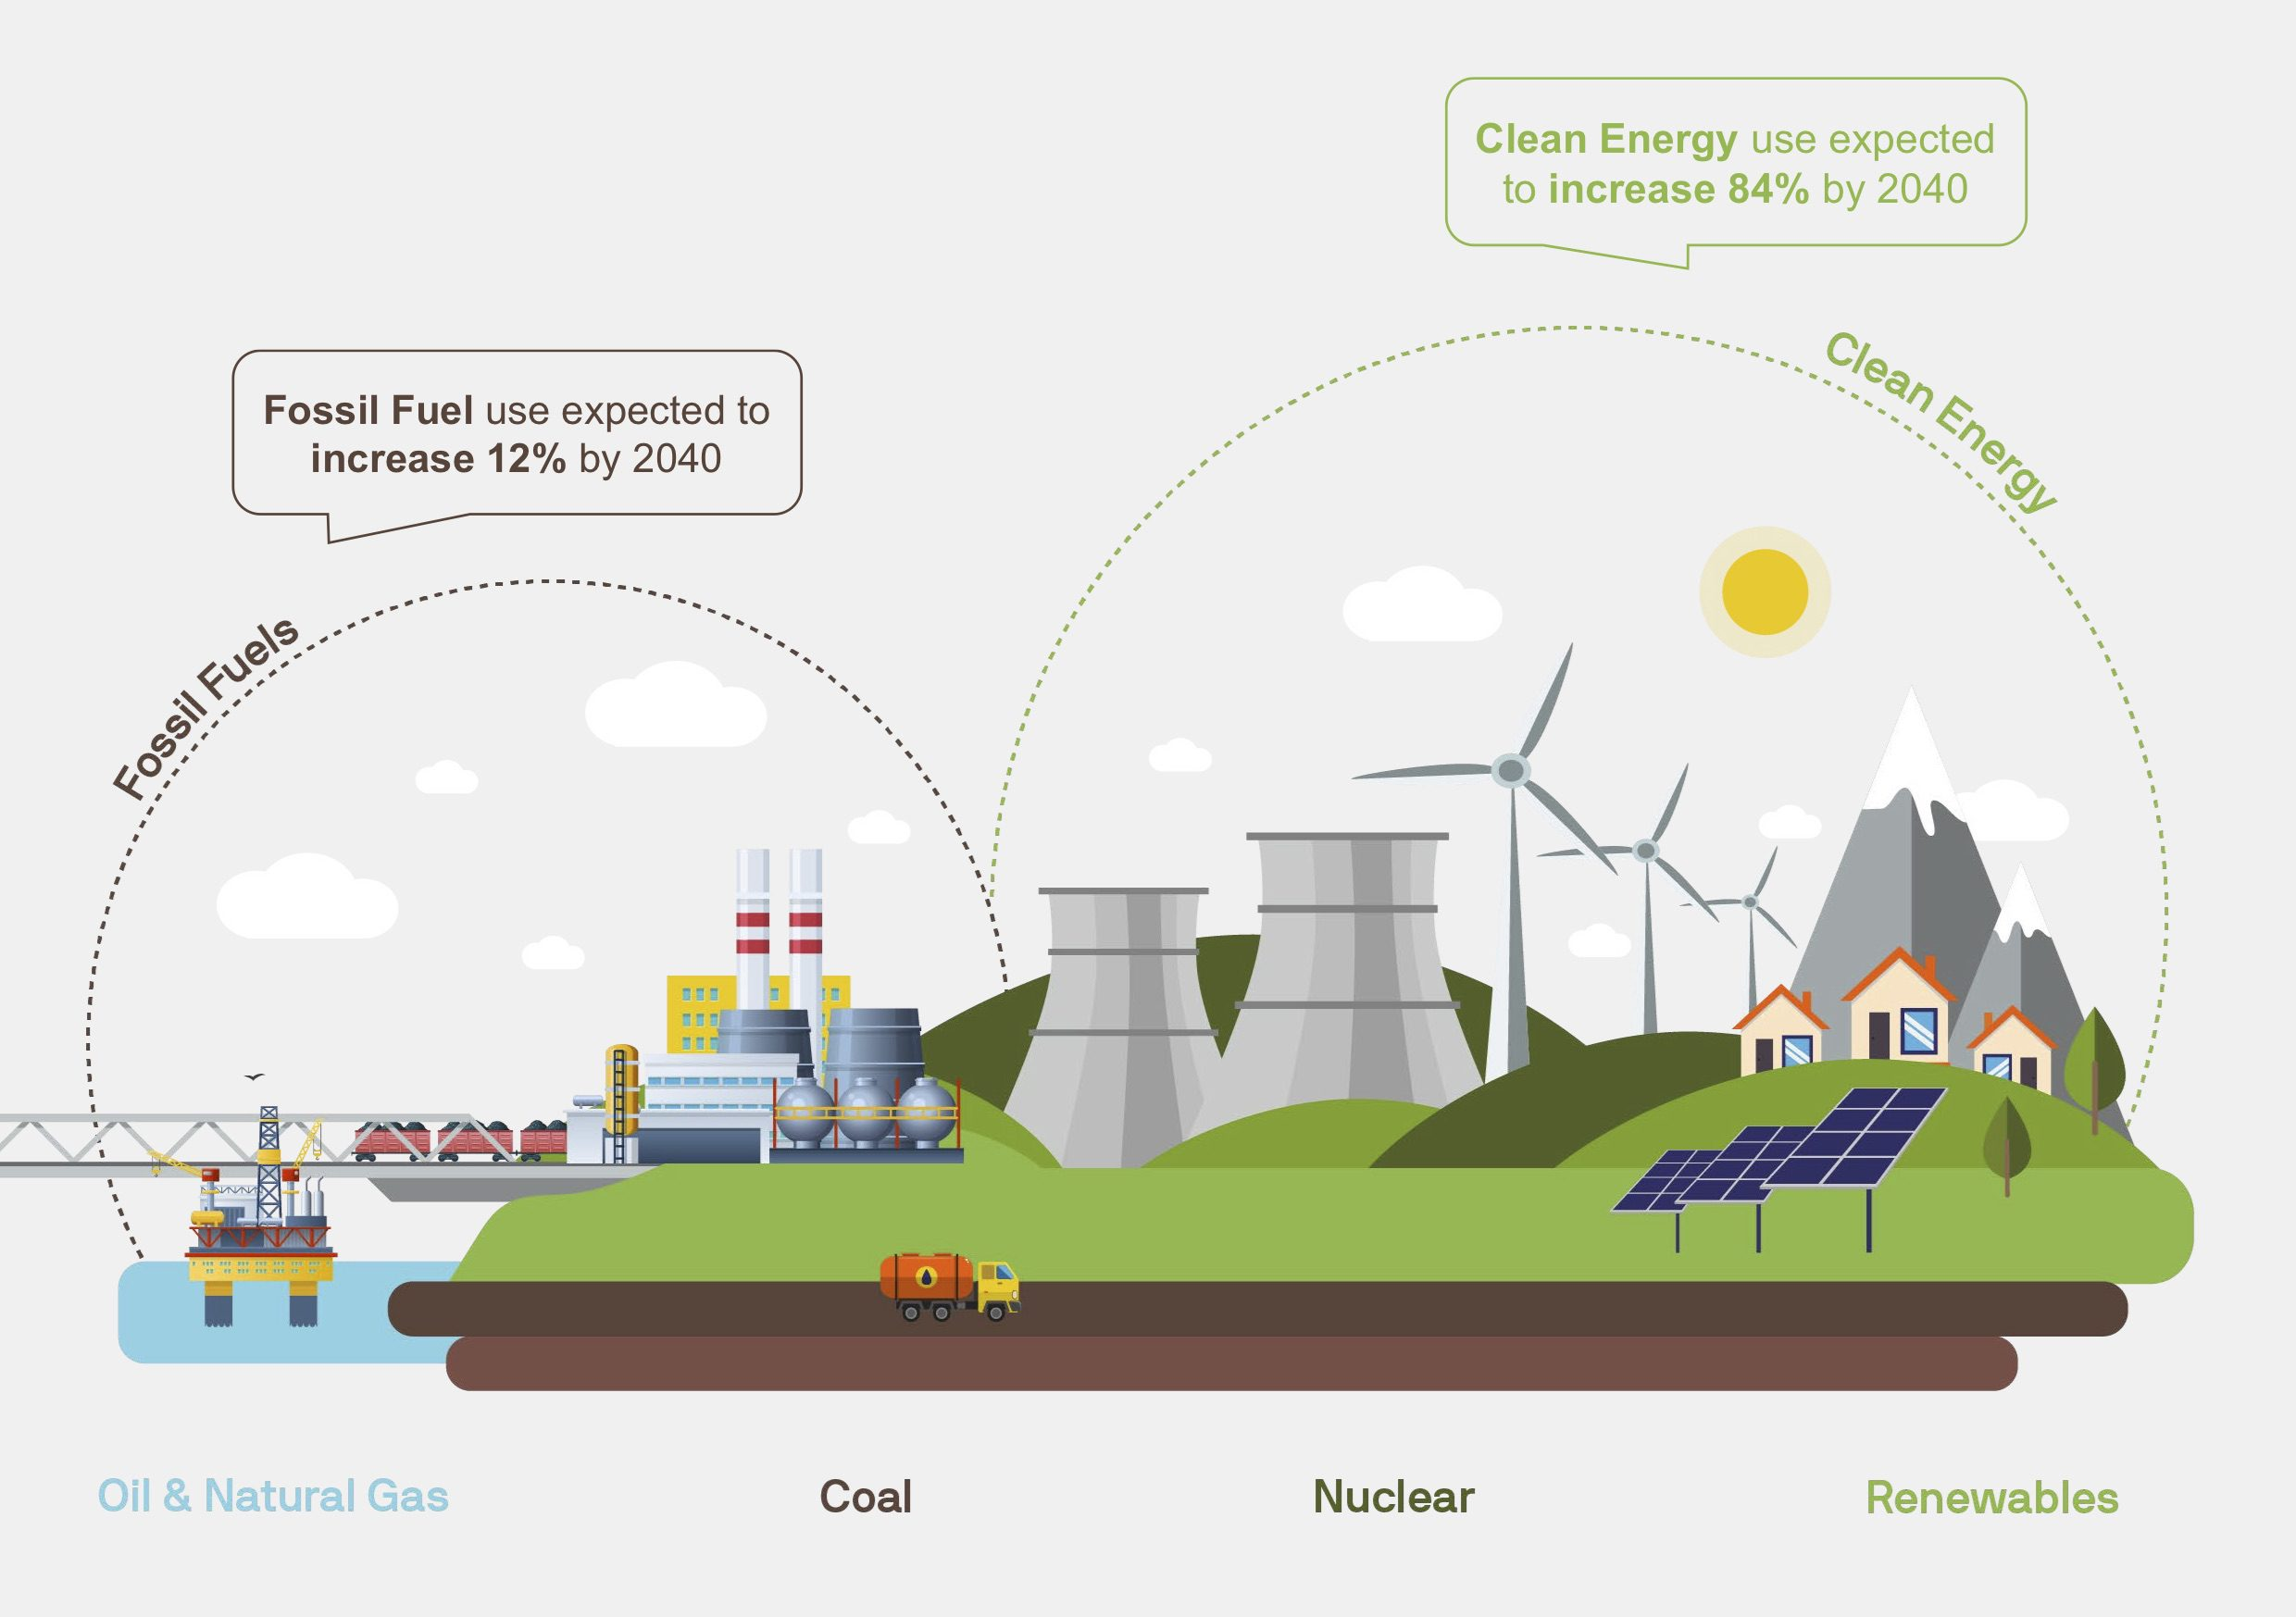 fossil fuel use expected to increase 12% by 2040. Clean energy use expected to increase 84%.